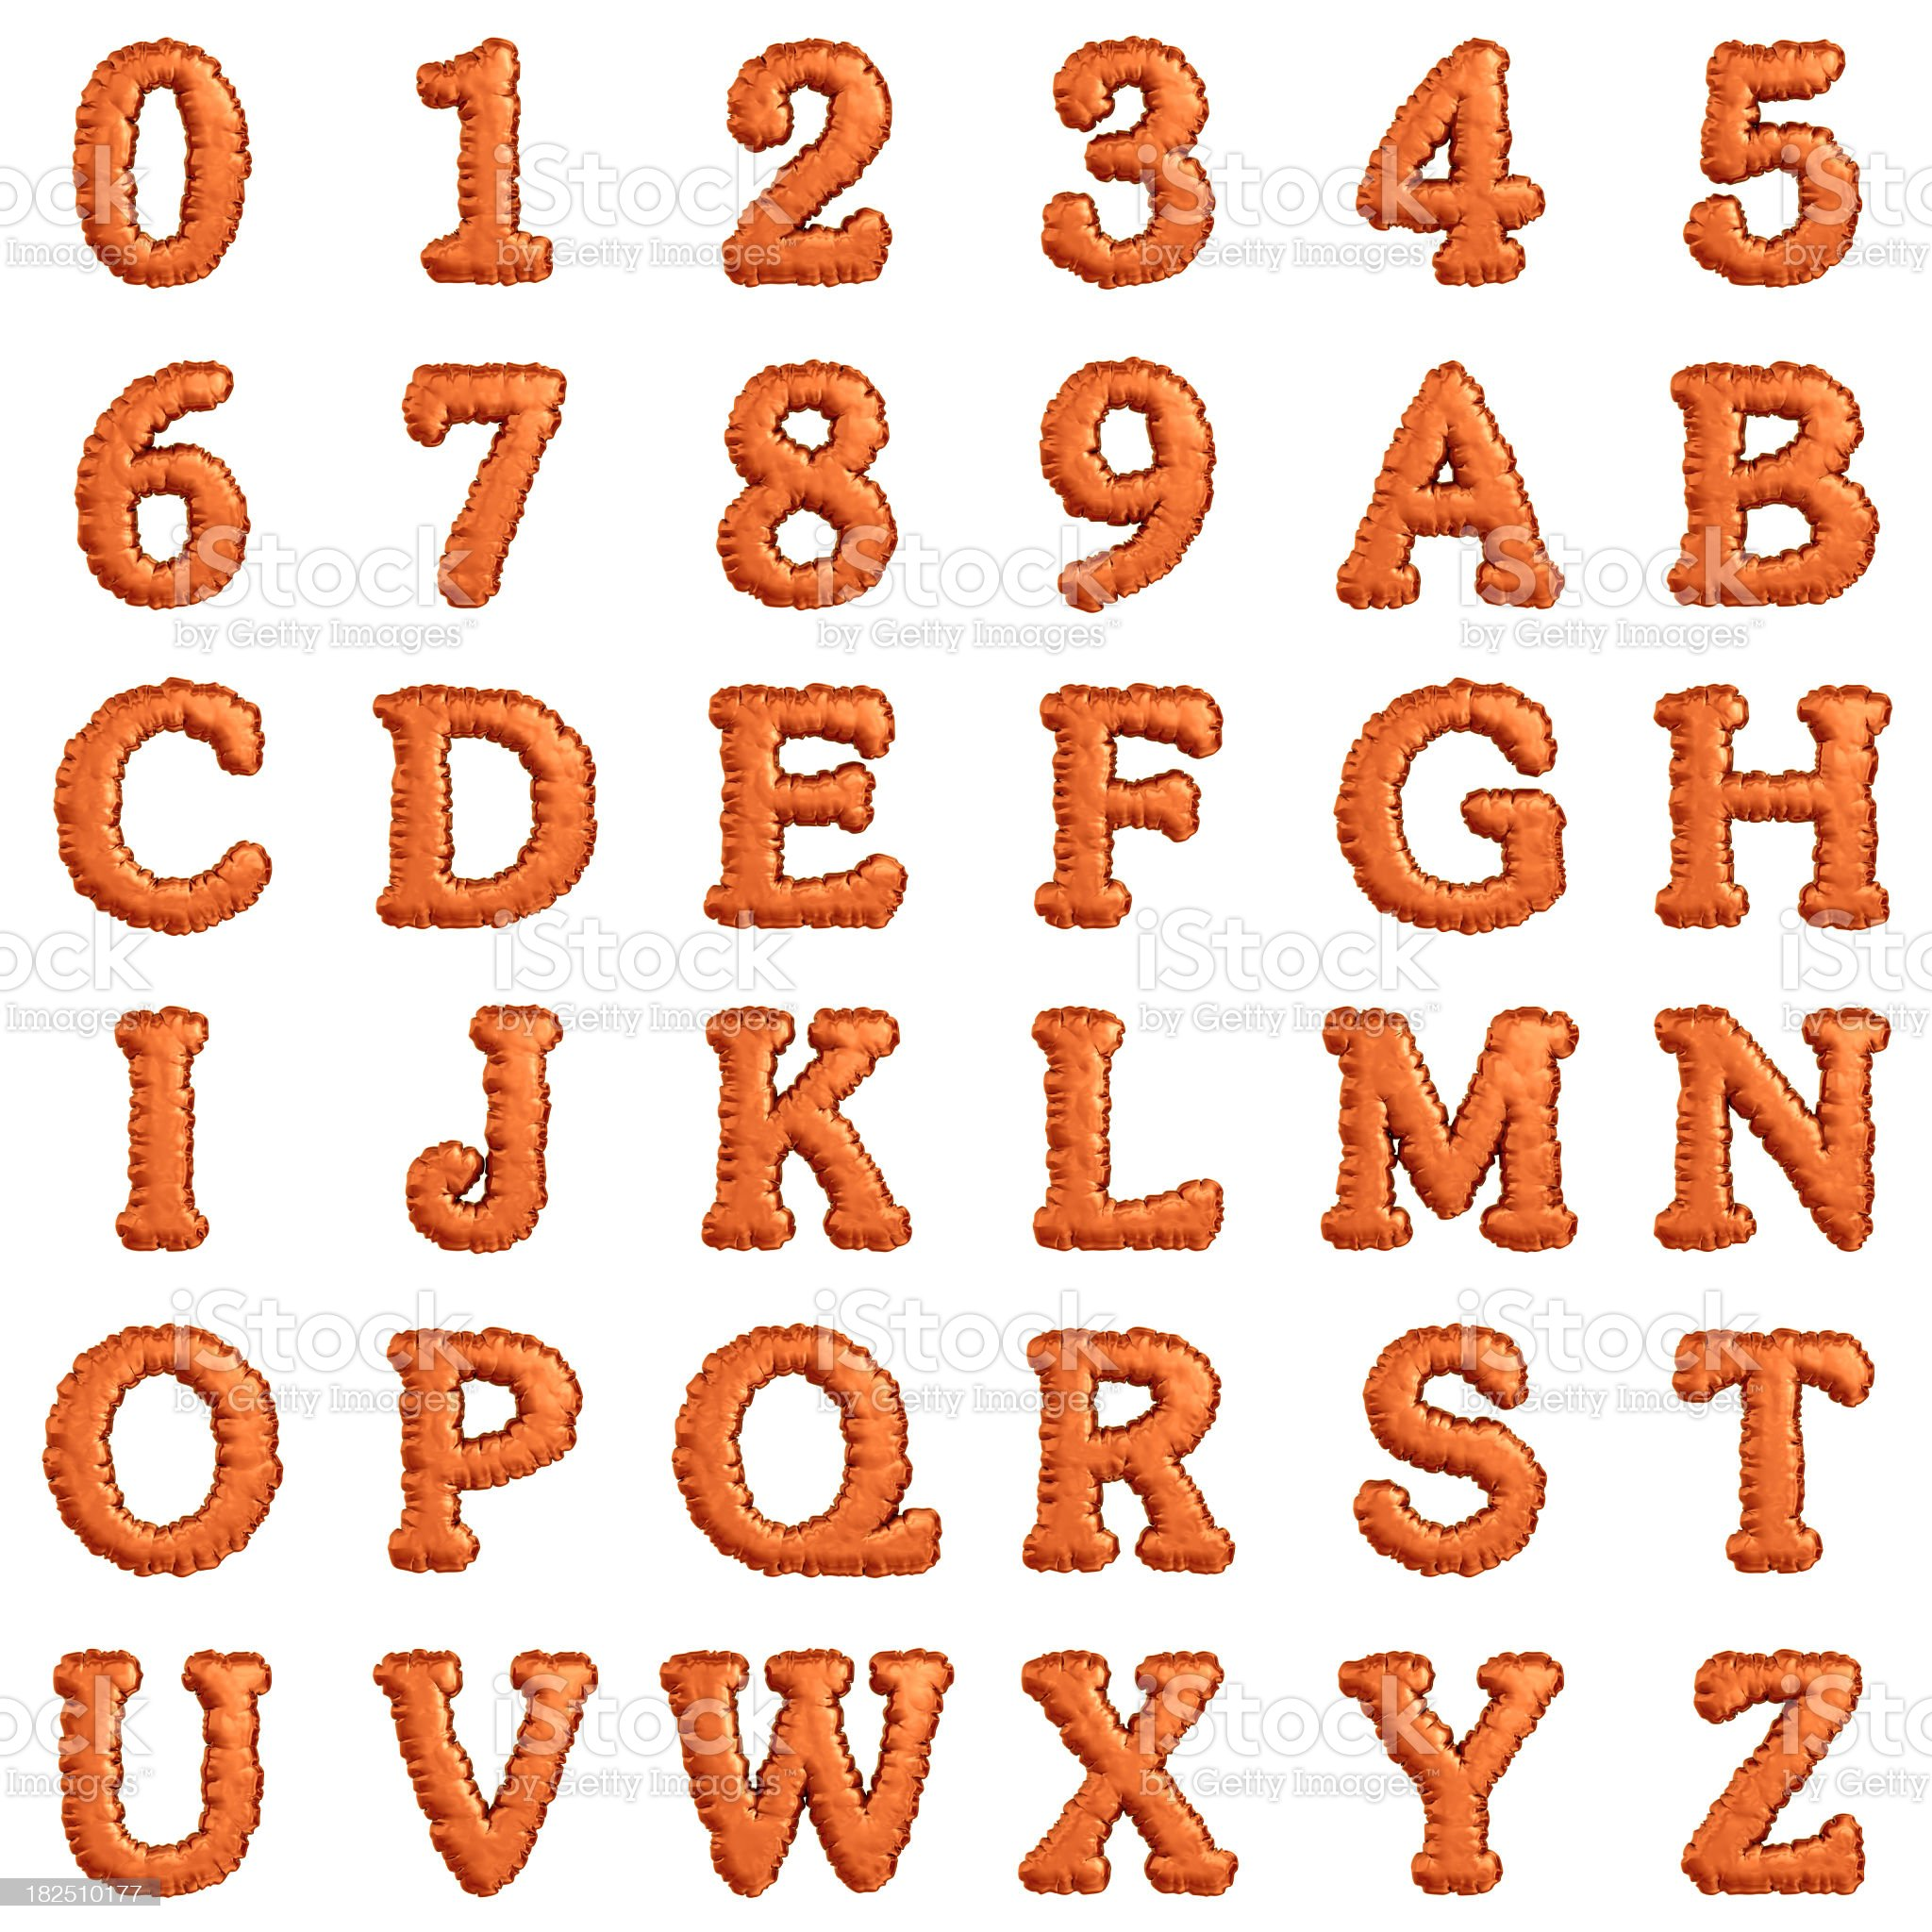 alphabets and numbers royalty-free stock photo